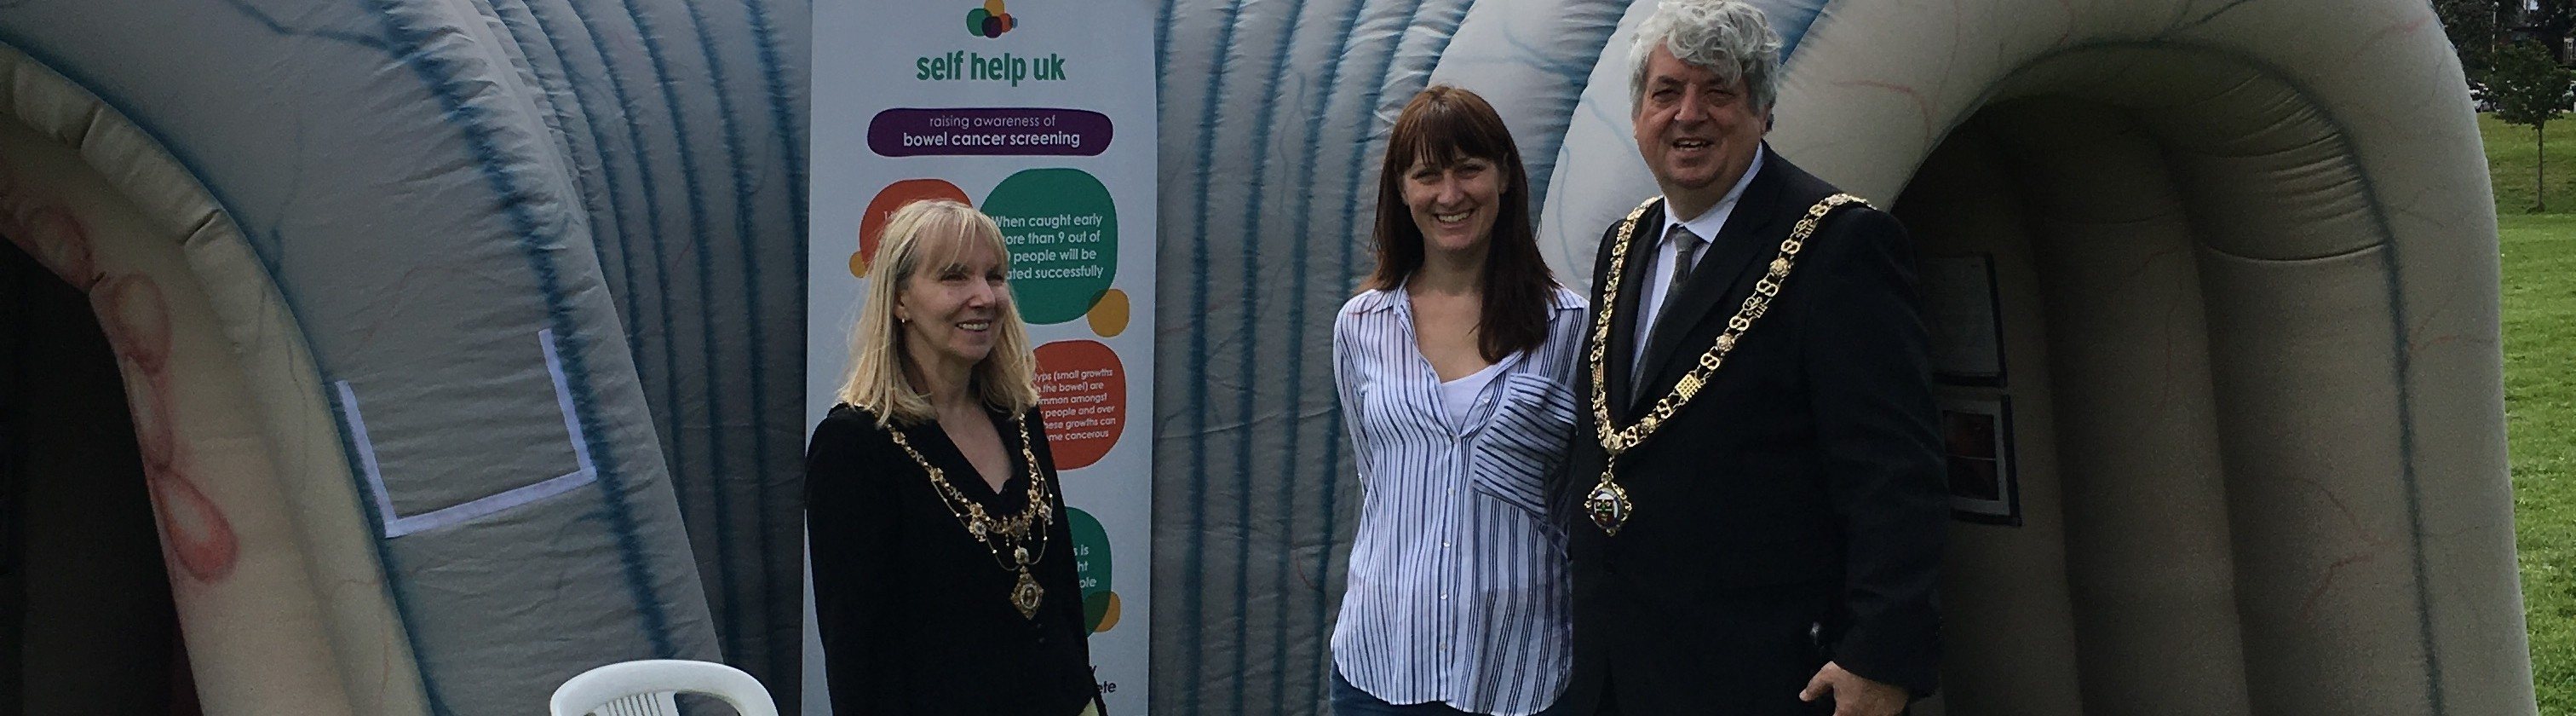 Keeley with Mayor of Nottingham at a promotional event